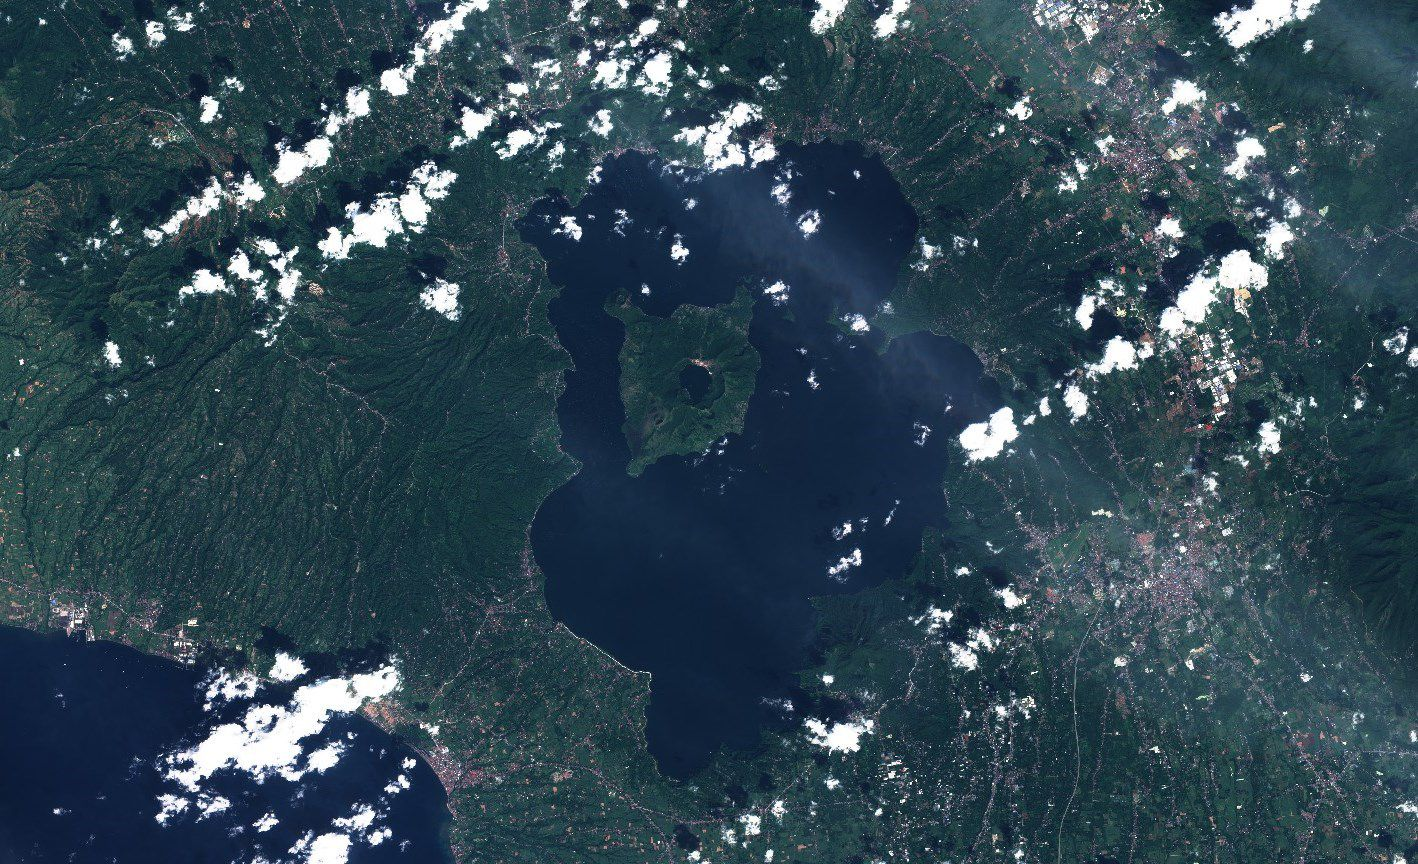 Volcan Taal - Philippines - Volcano Island - Geography Sentinel-2 - Copernicus - Eruption - satellite